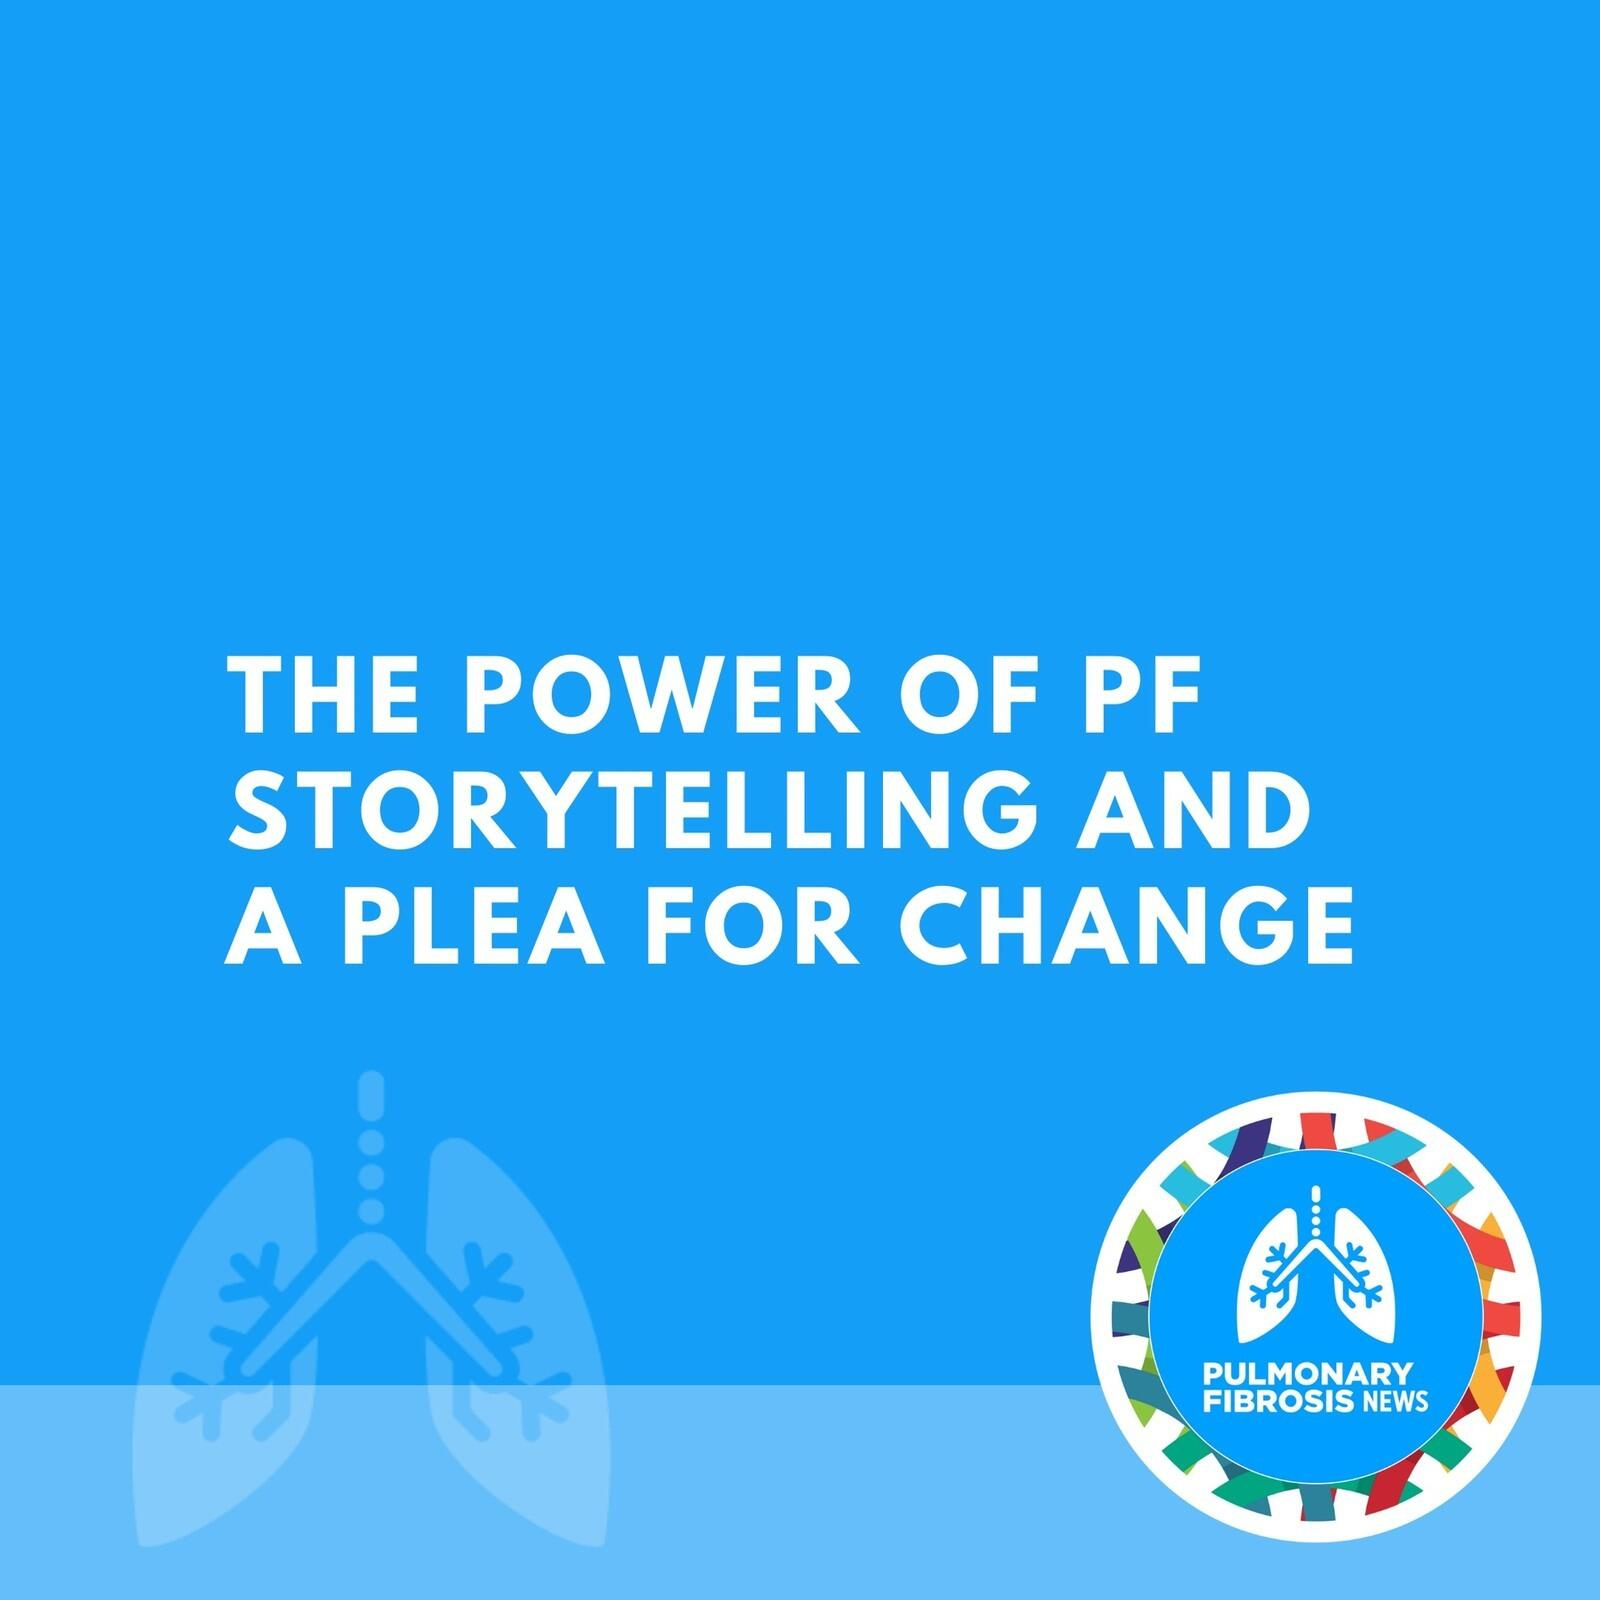 The Power of PF Storytelling, and a Plea for Change